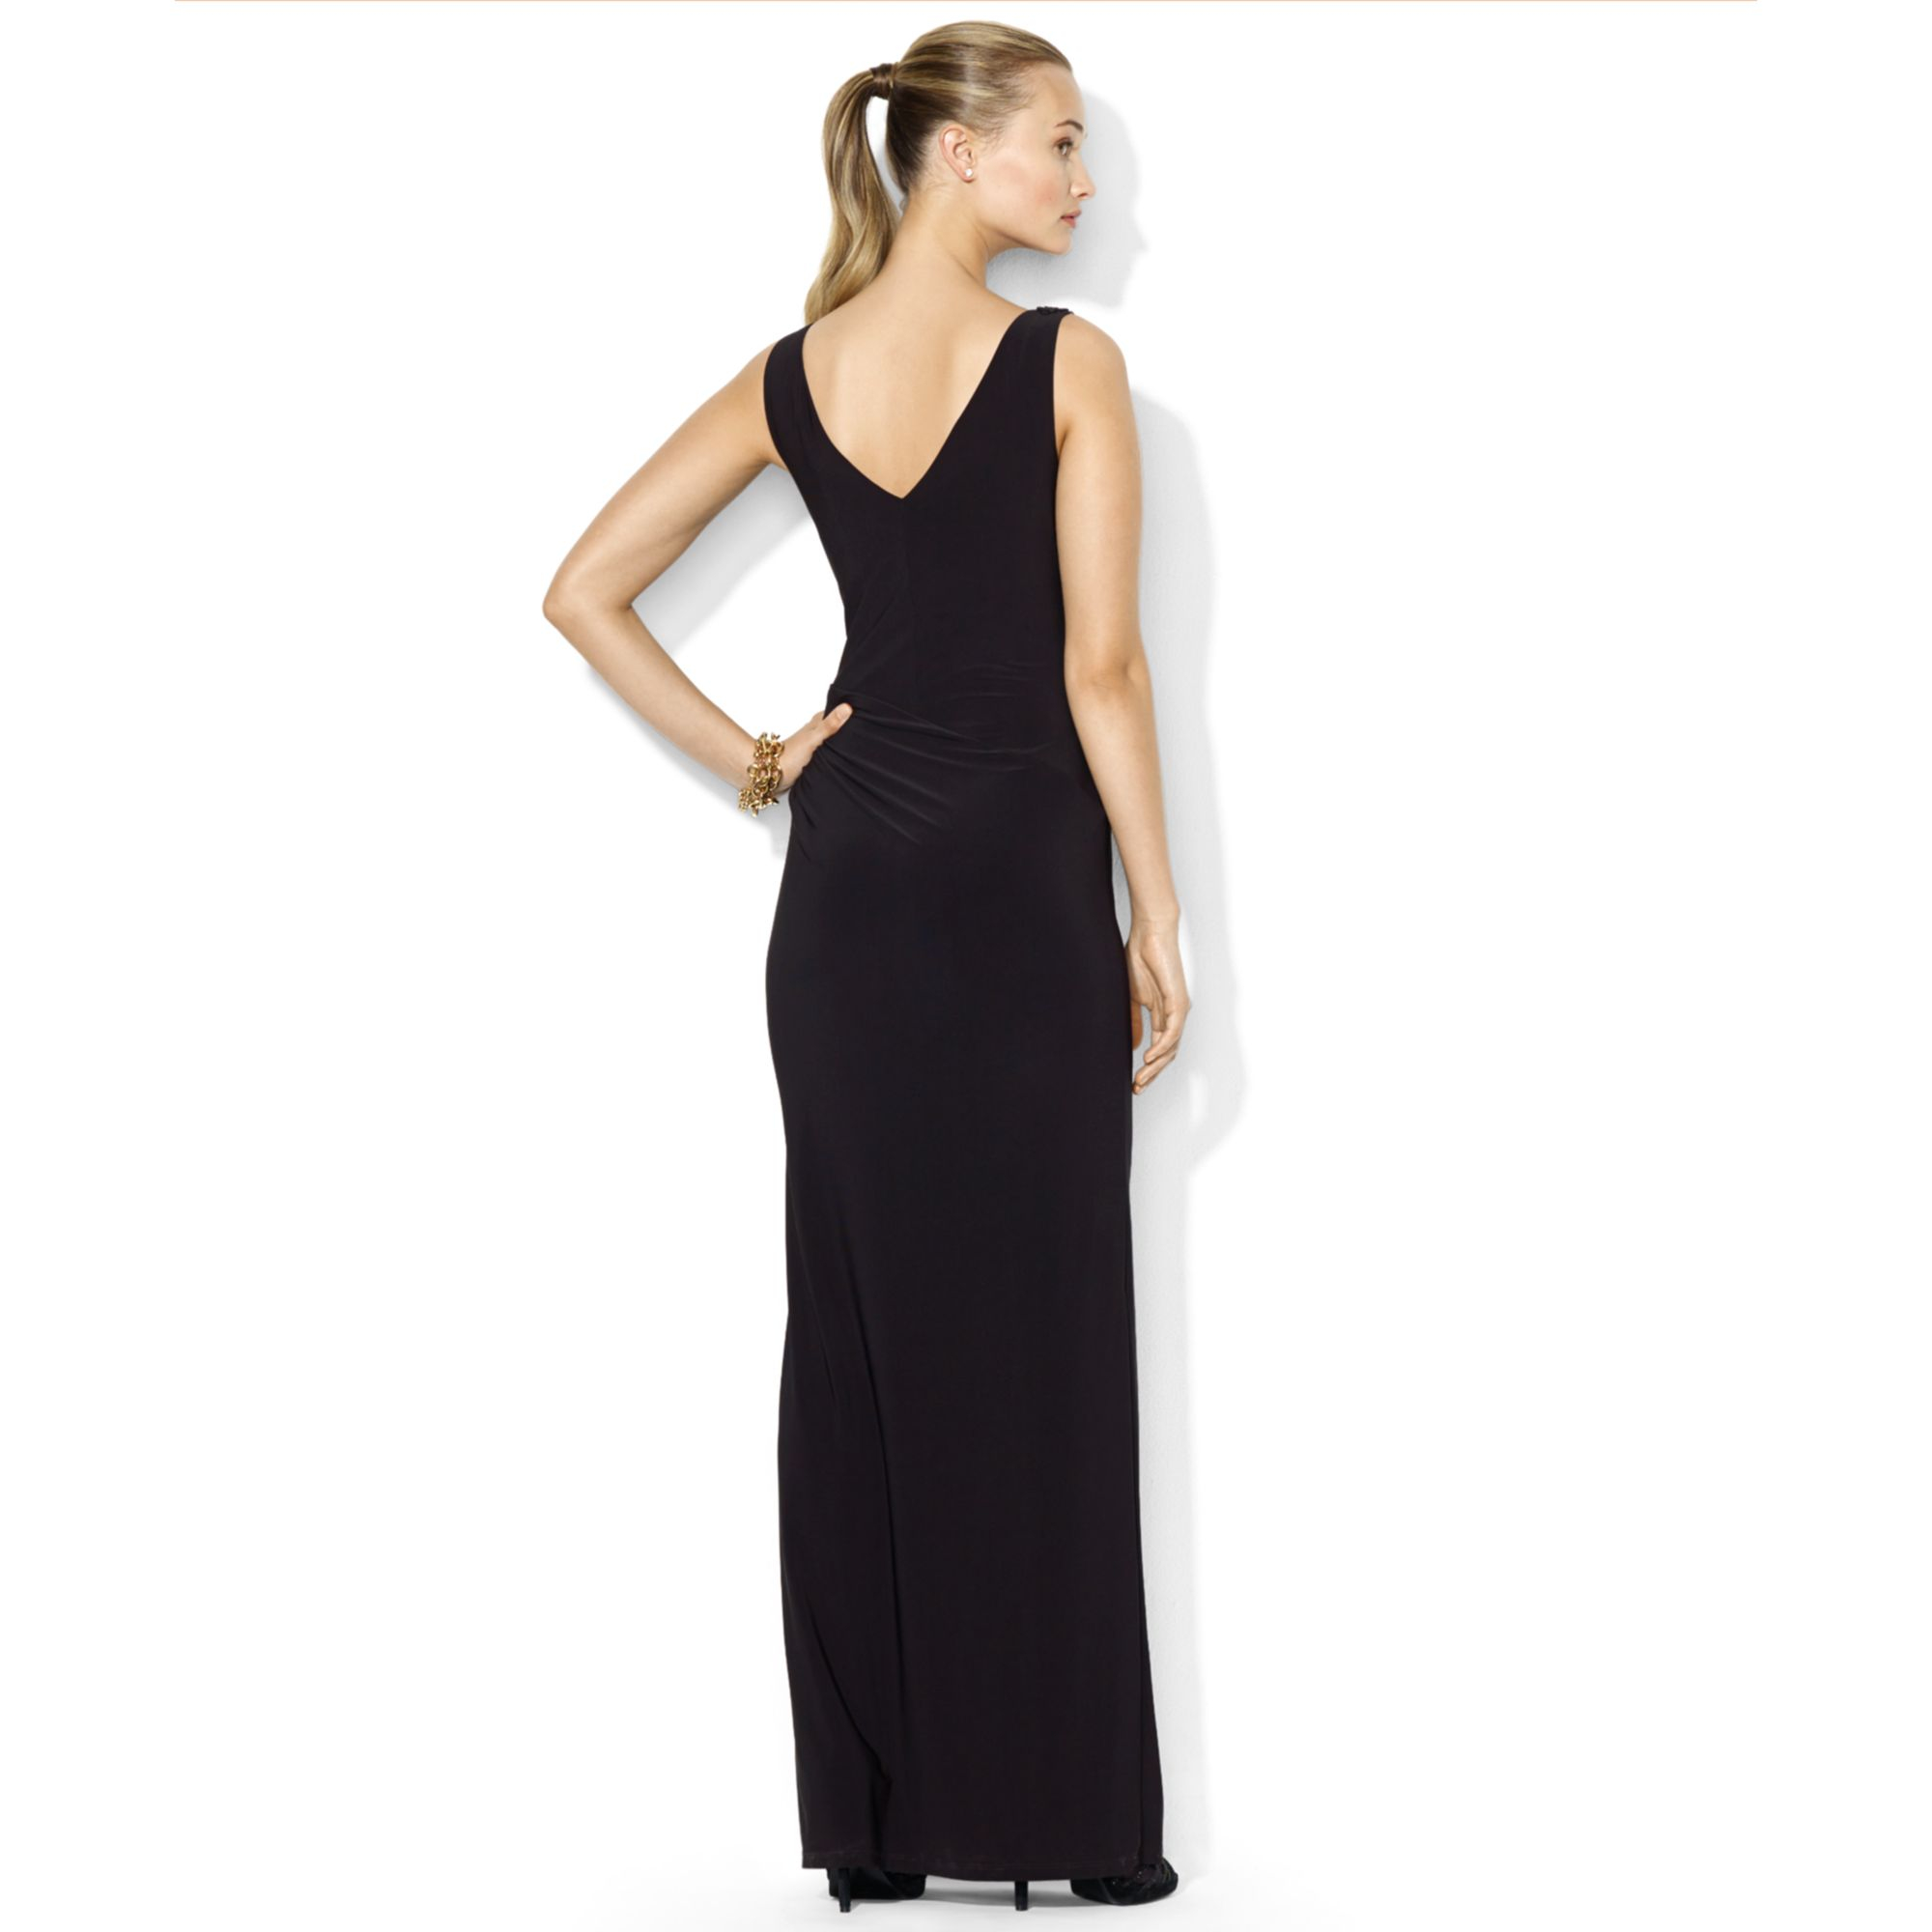 Lyst - Lauren By Ralph Lauren Lauren By Ralph Lauren Dress Sleeveless Beaded  Embellished Gown in Black